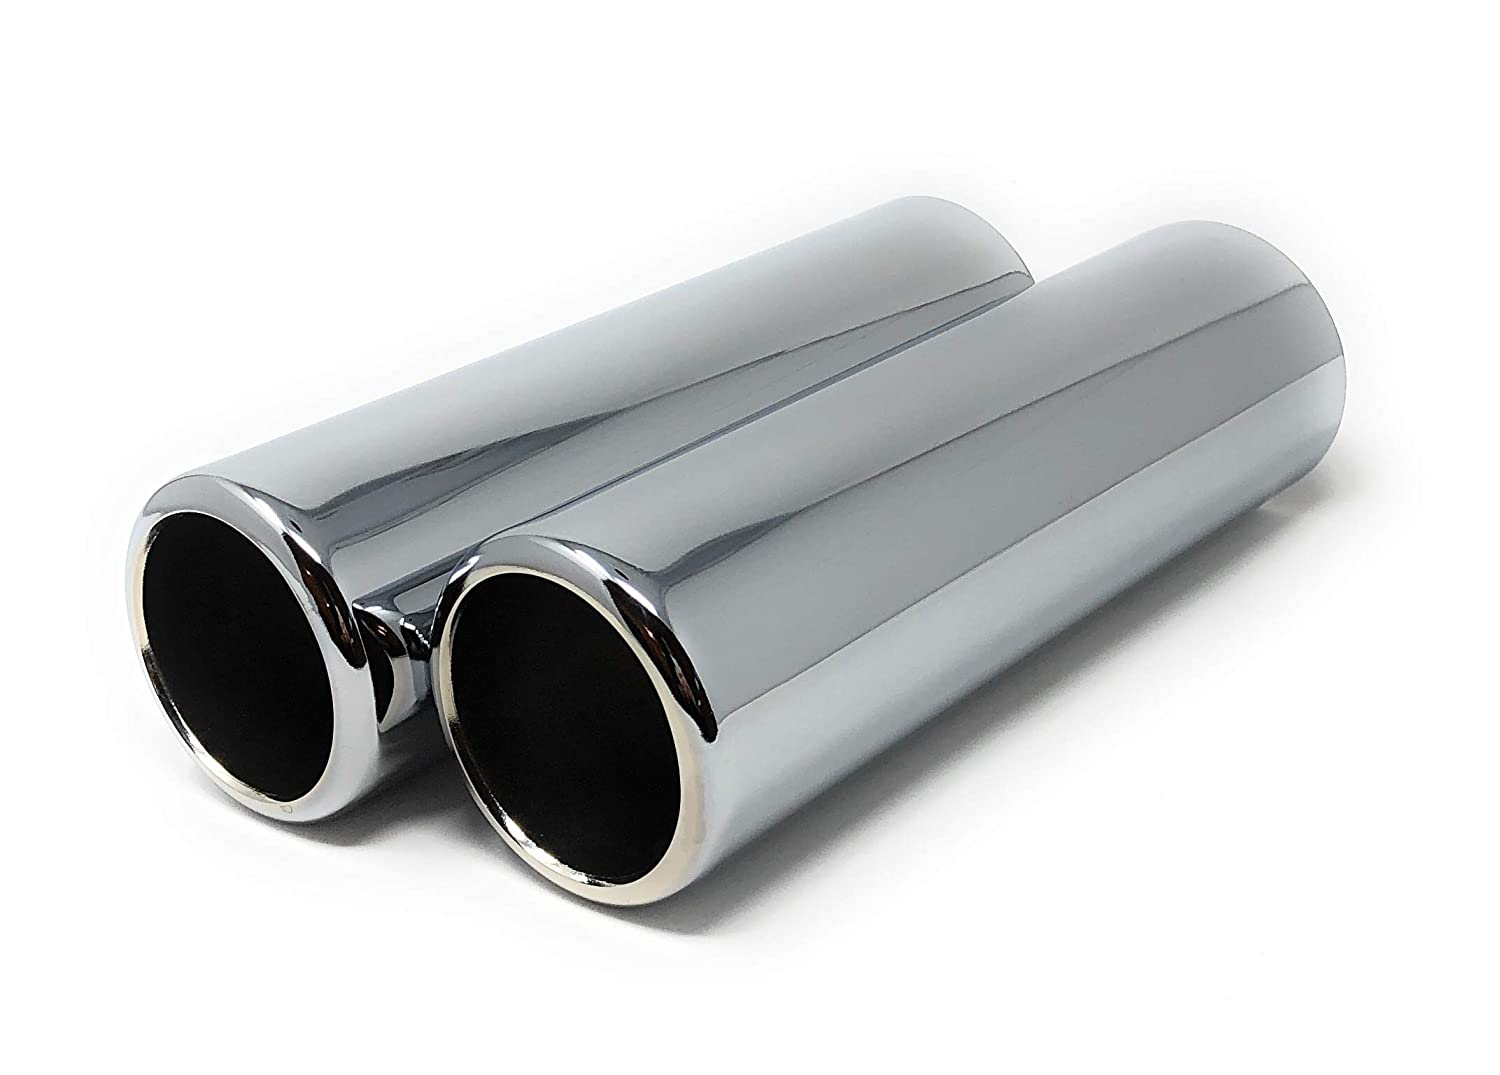 2.50 Outlet 9 Length 2 Piece Set of Pencil Cut Chrome Exhaust Tips 2.25 Inlet